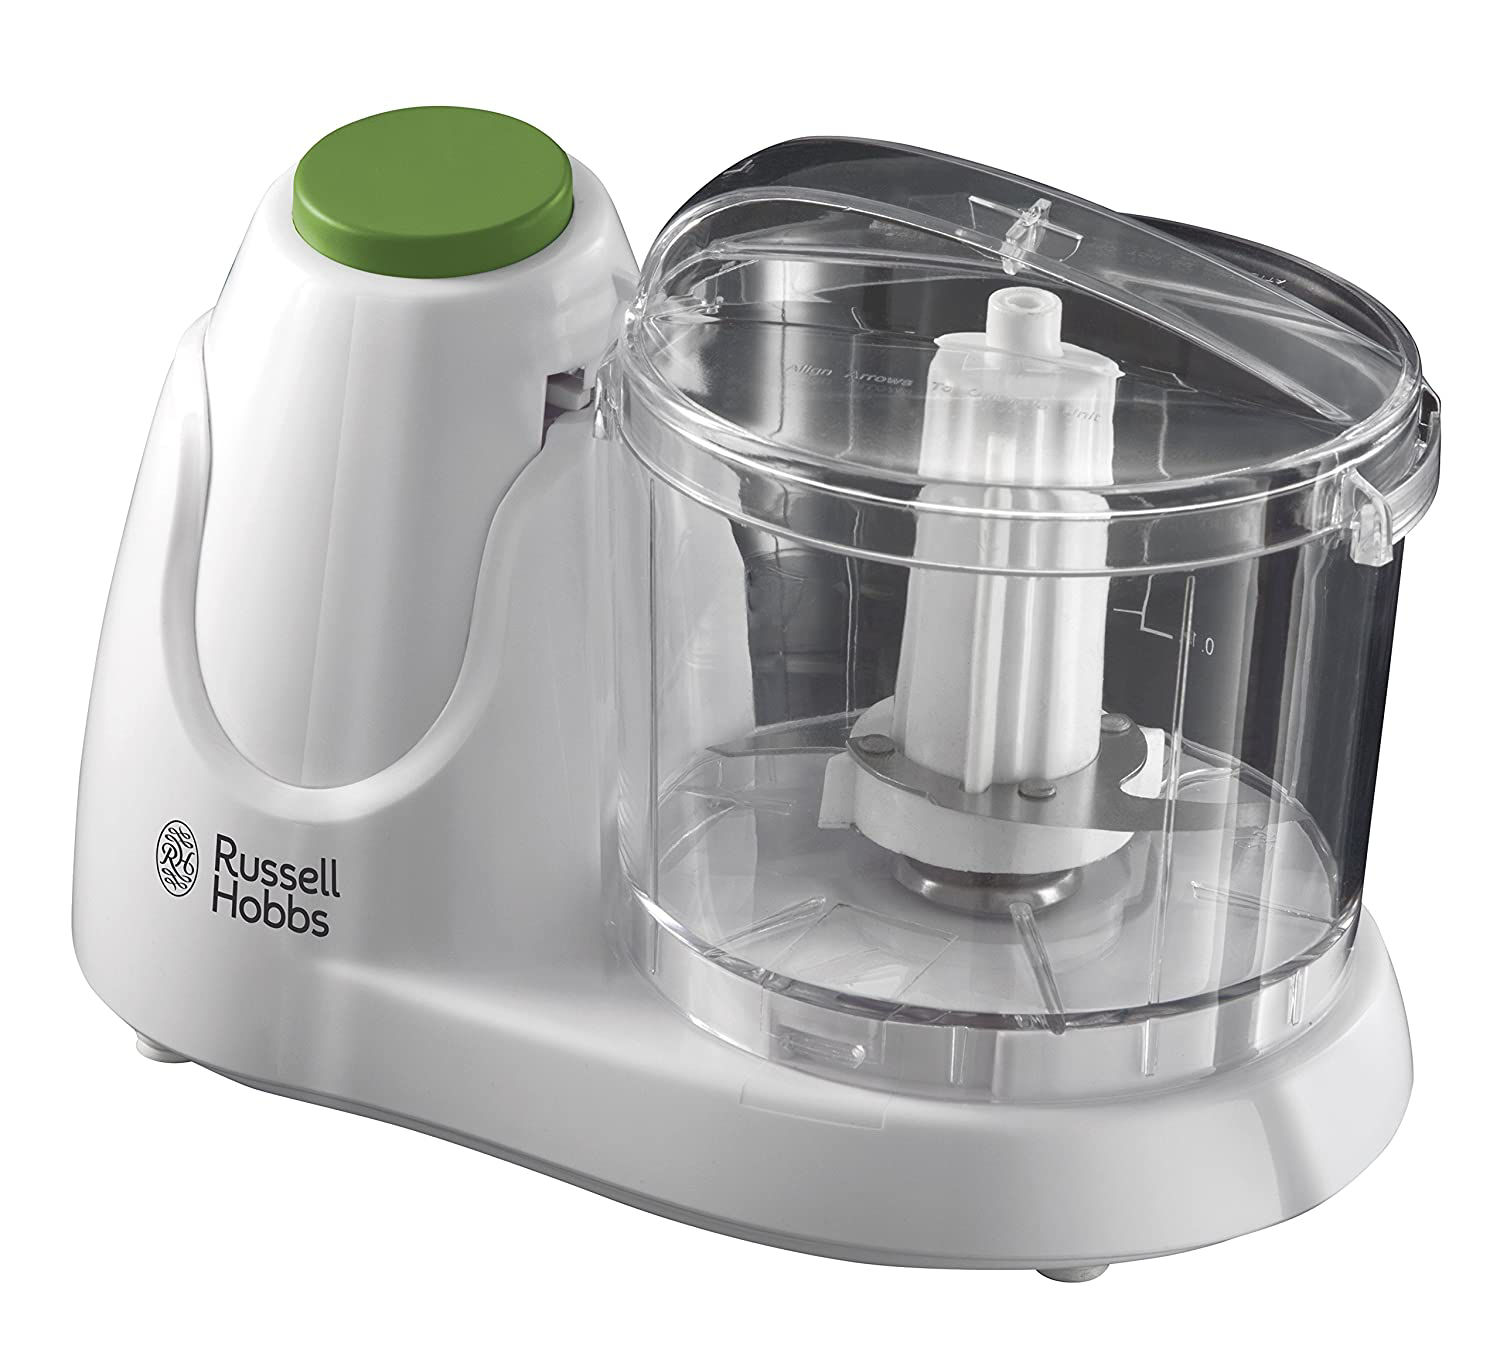 Picture of Russell Hobbs Mini Chopper 22220, 130 W - White